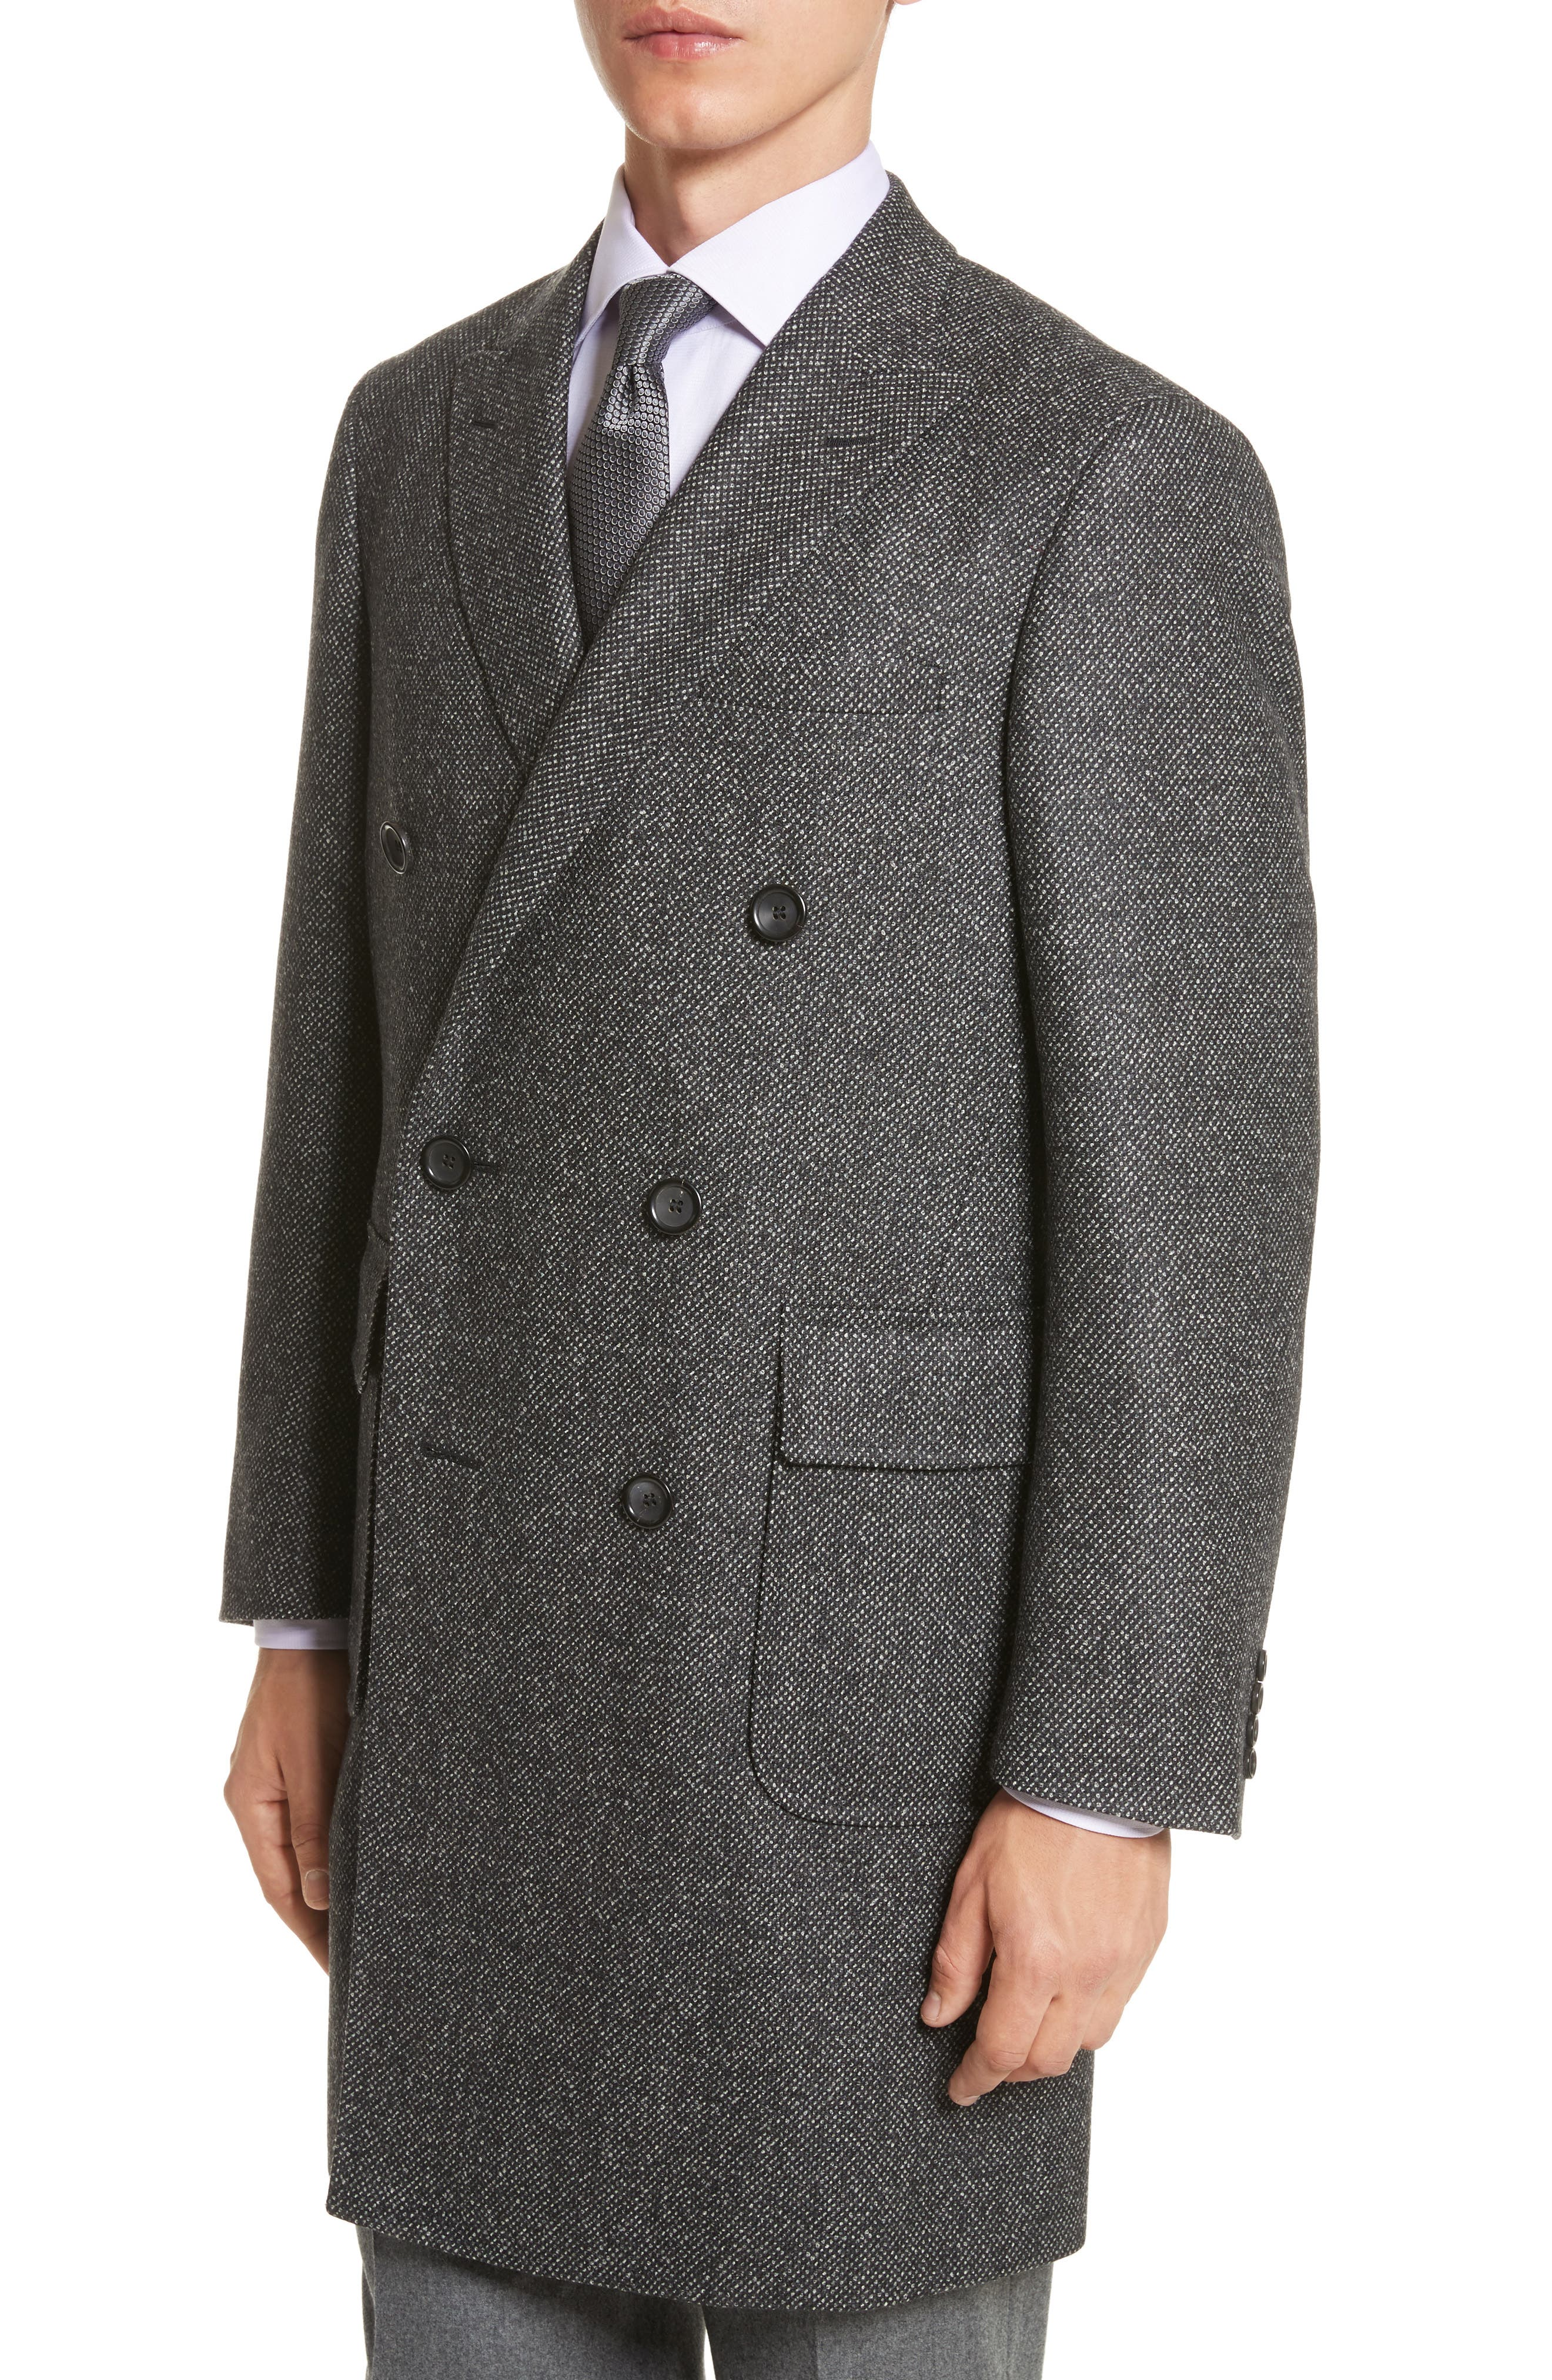 Alternate Image 4  - Canali Classic Fit Wool Topcoat